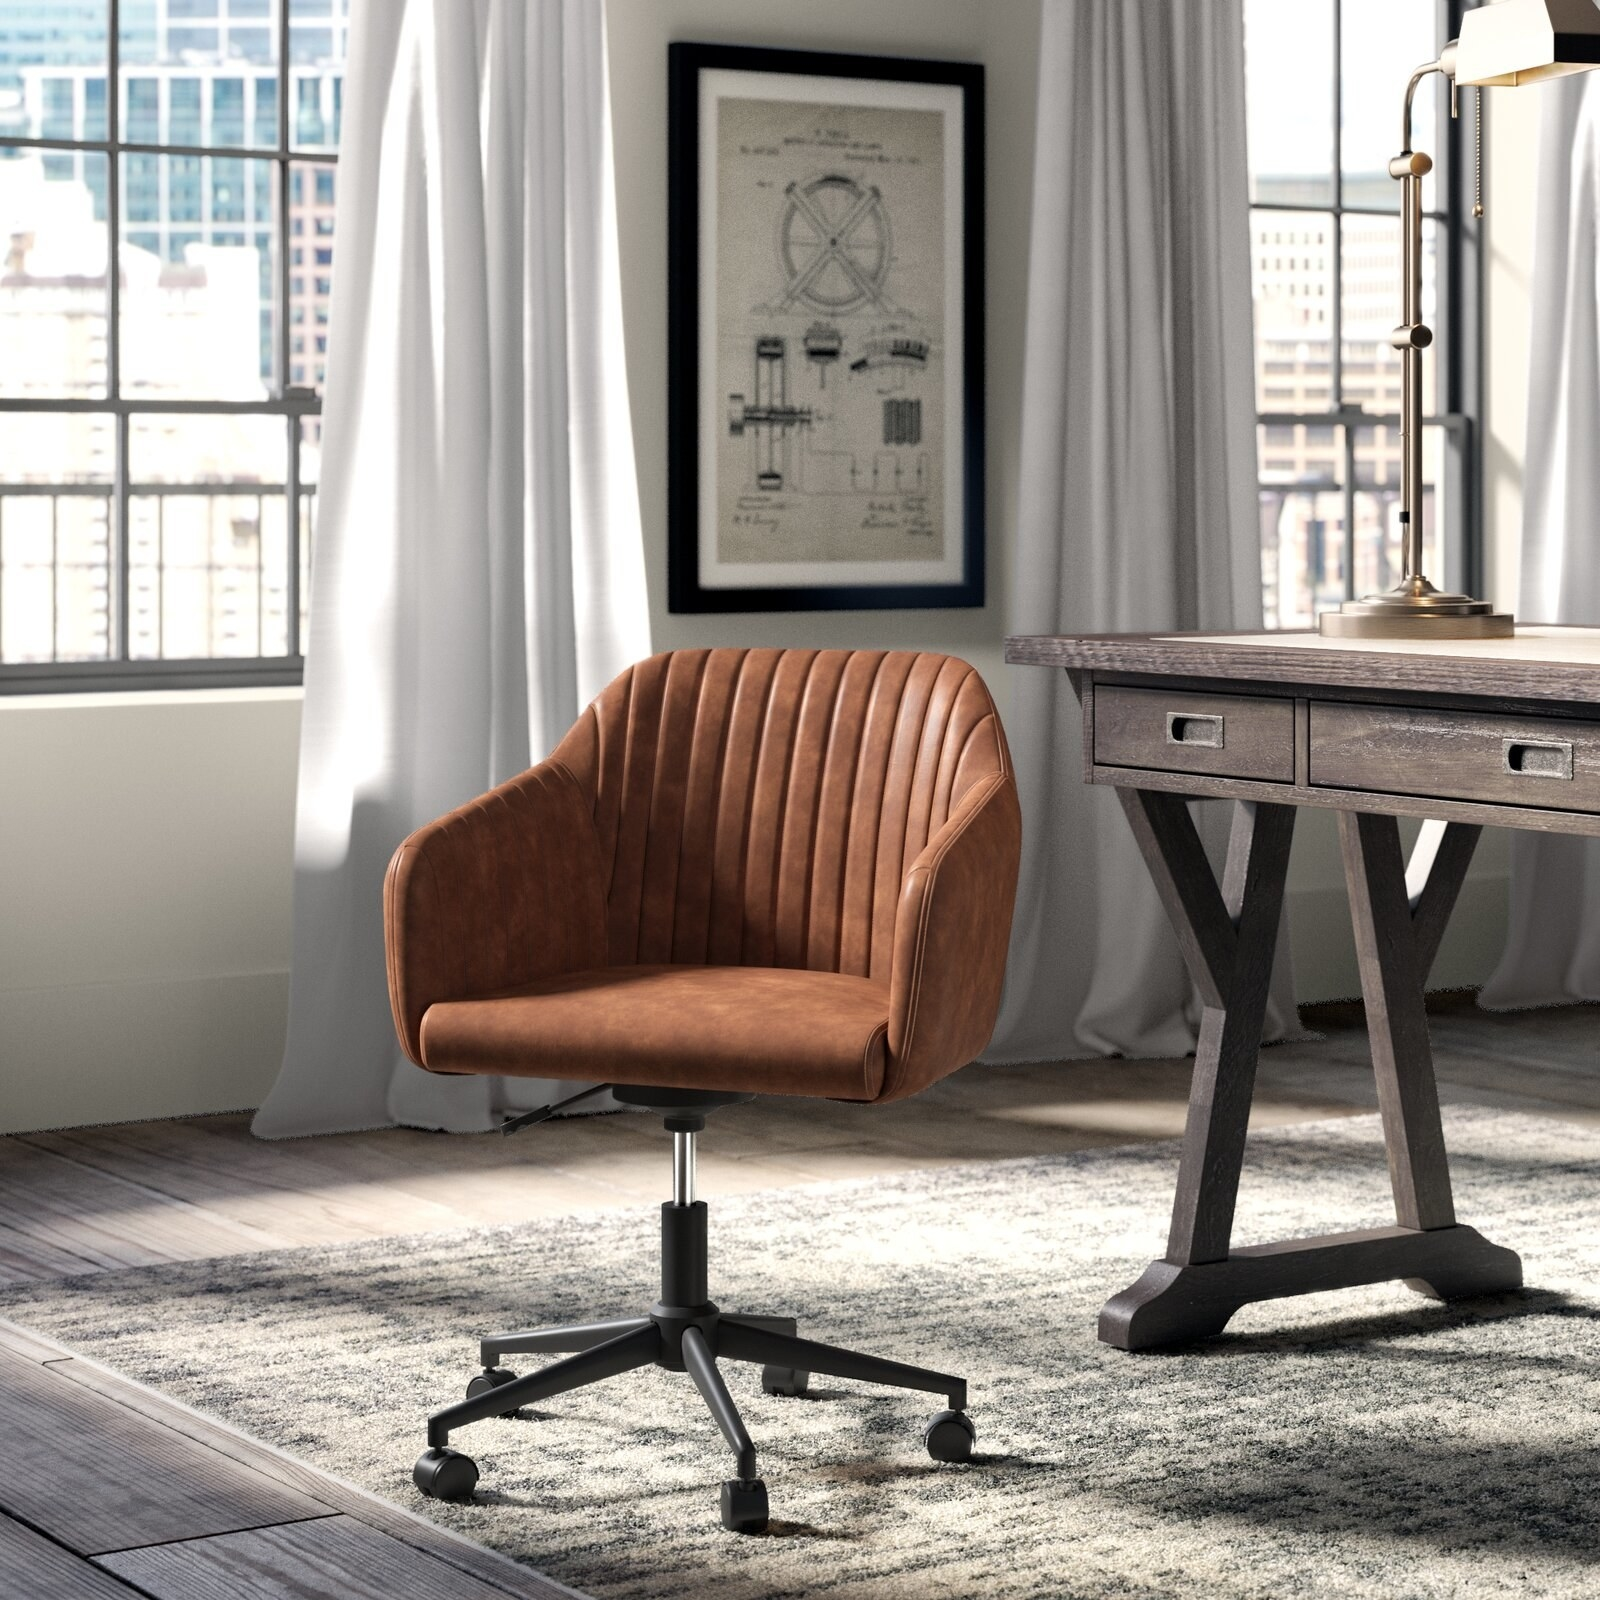 Rolling desk chair in brown upholstery